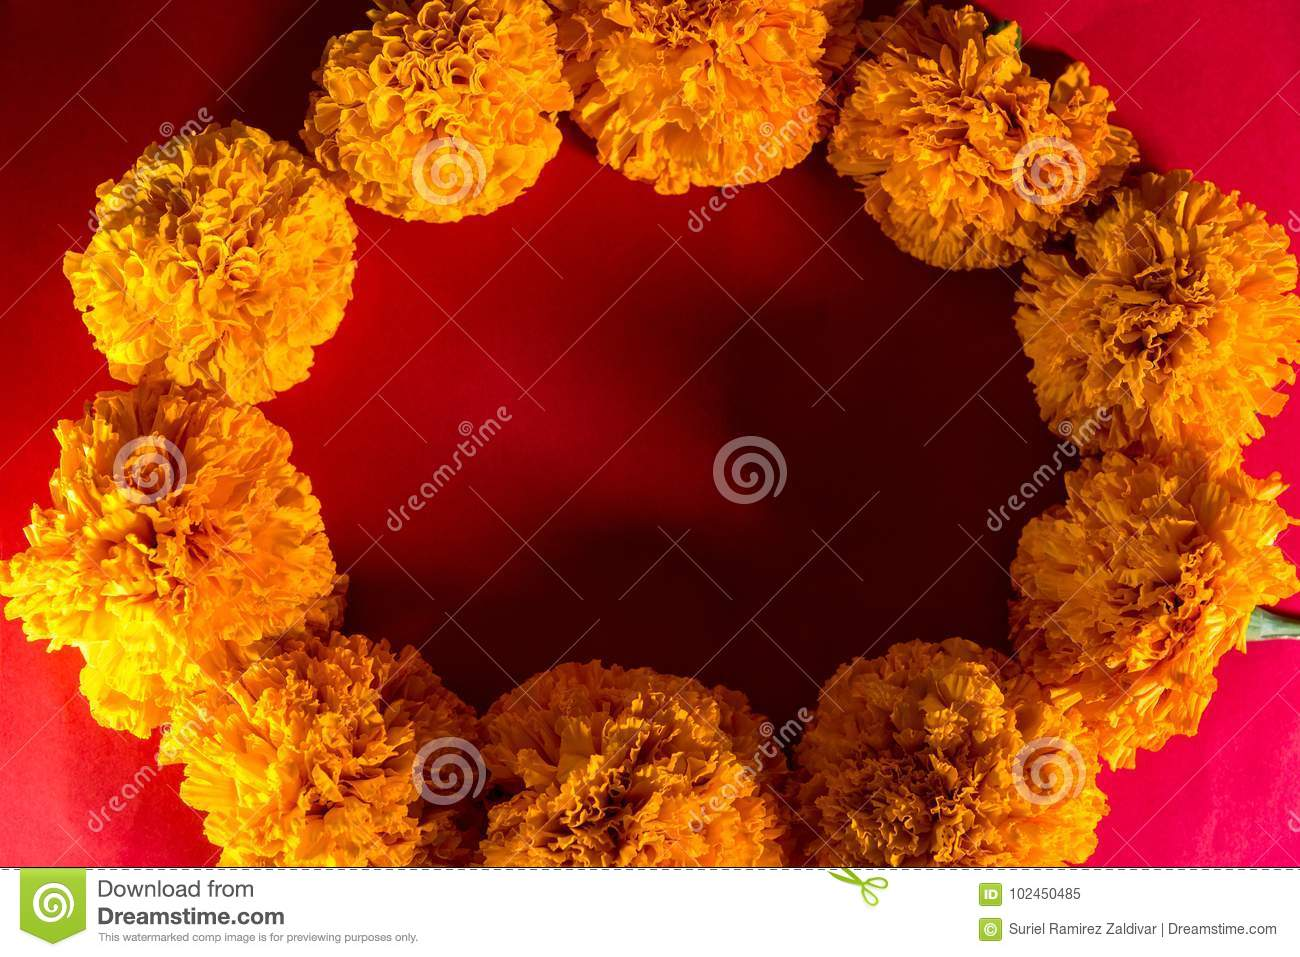 Mexican Marigold Cempasuchil Flower Day Of The Dead Celebration